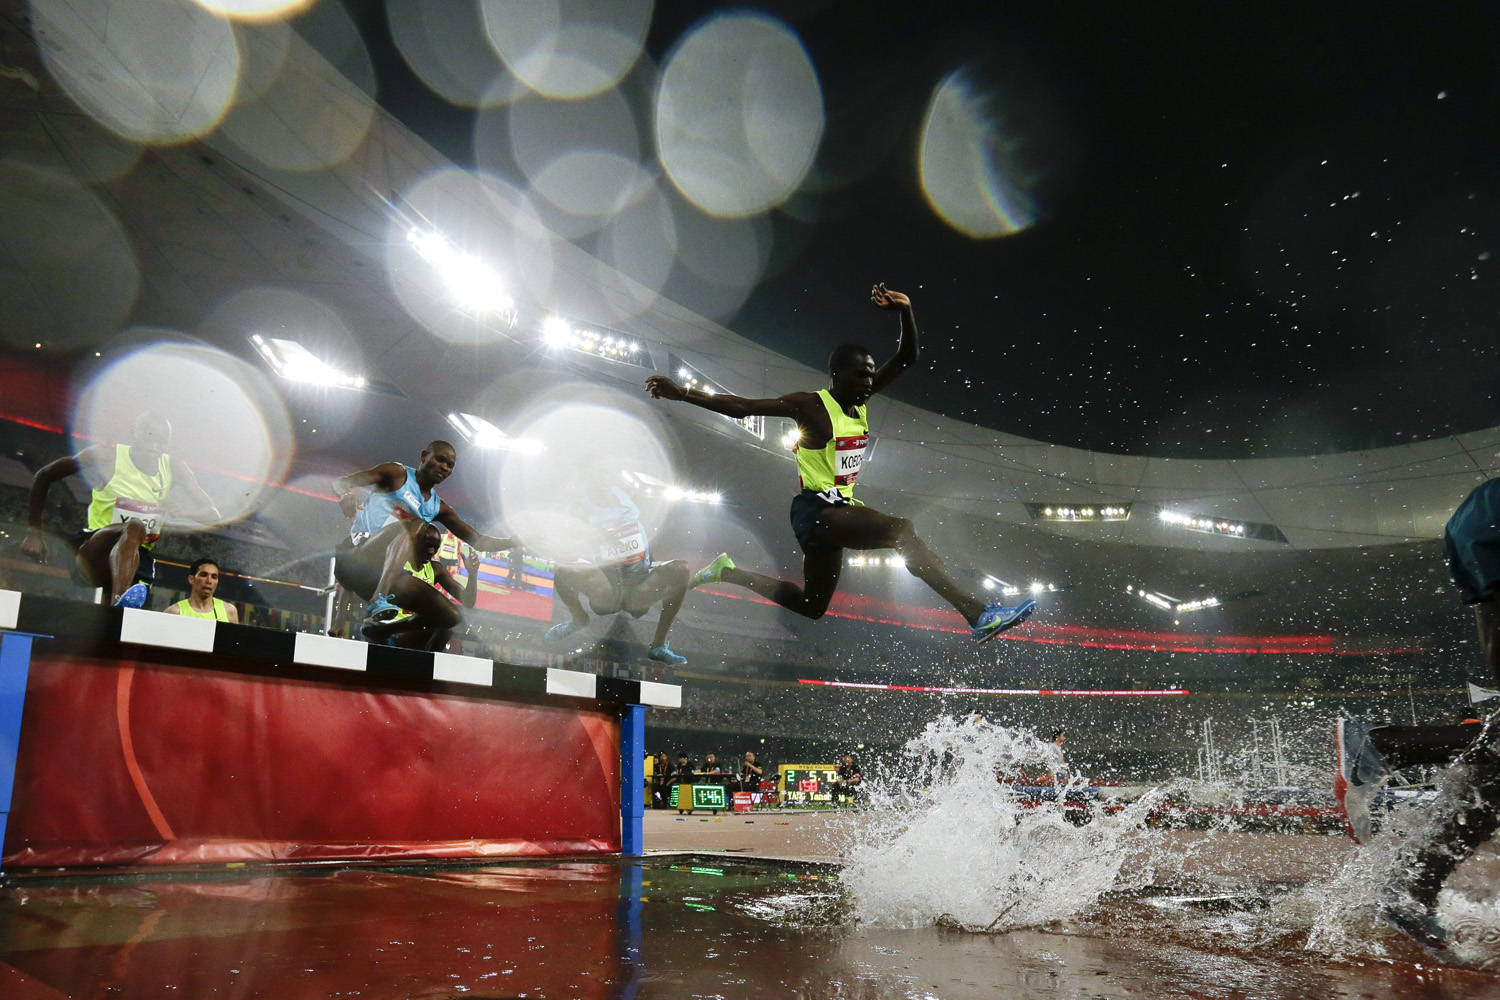 May 21, 2014. Athletes compete in the men's 3000m steeplechase at the 2014 IAAF World Challenge Beijing held at China's National Stadium in Beijing.